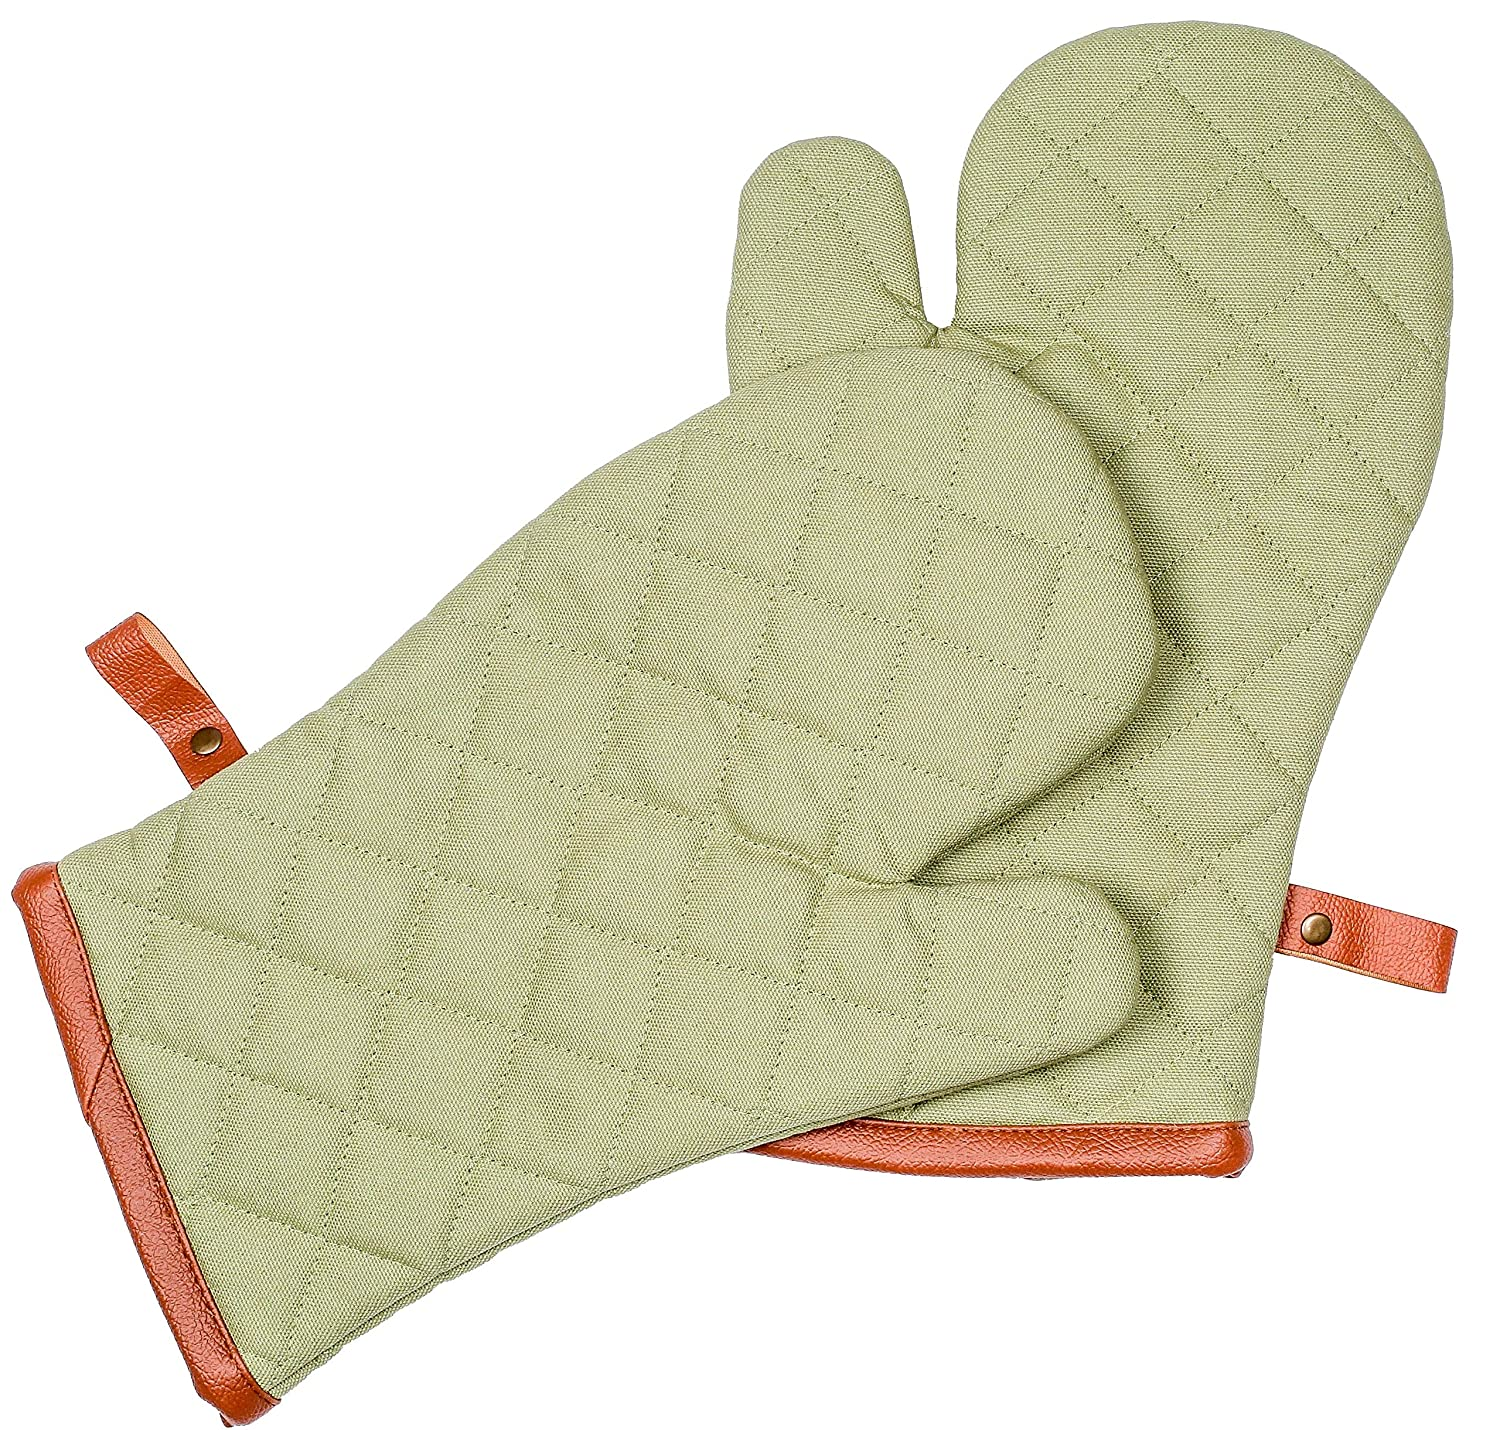 Cote De Amor Set of 2 Oven Mitts Gloves Bulk Heat Resistant Machine Washable, 100% Cotton Oven Mitts with Heavy Duty Leather Hanger for Everyday Kitchen Cooking Baking BBQ, Green